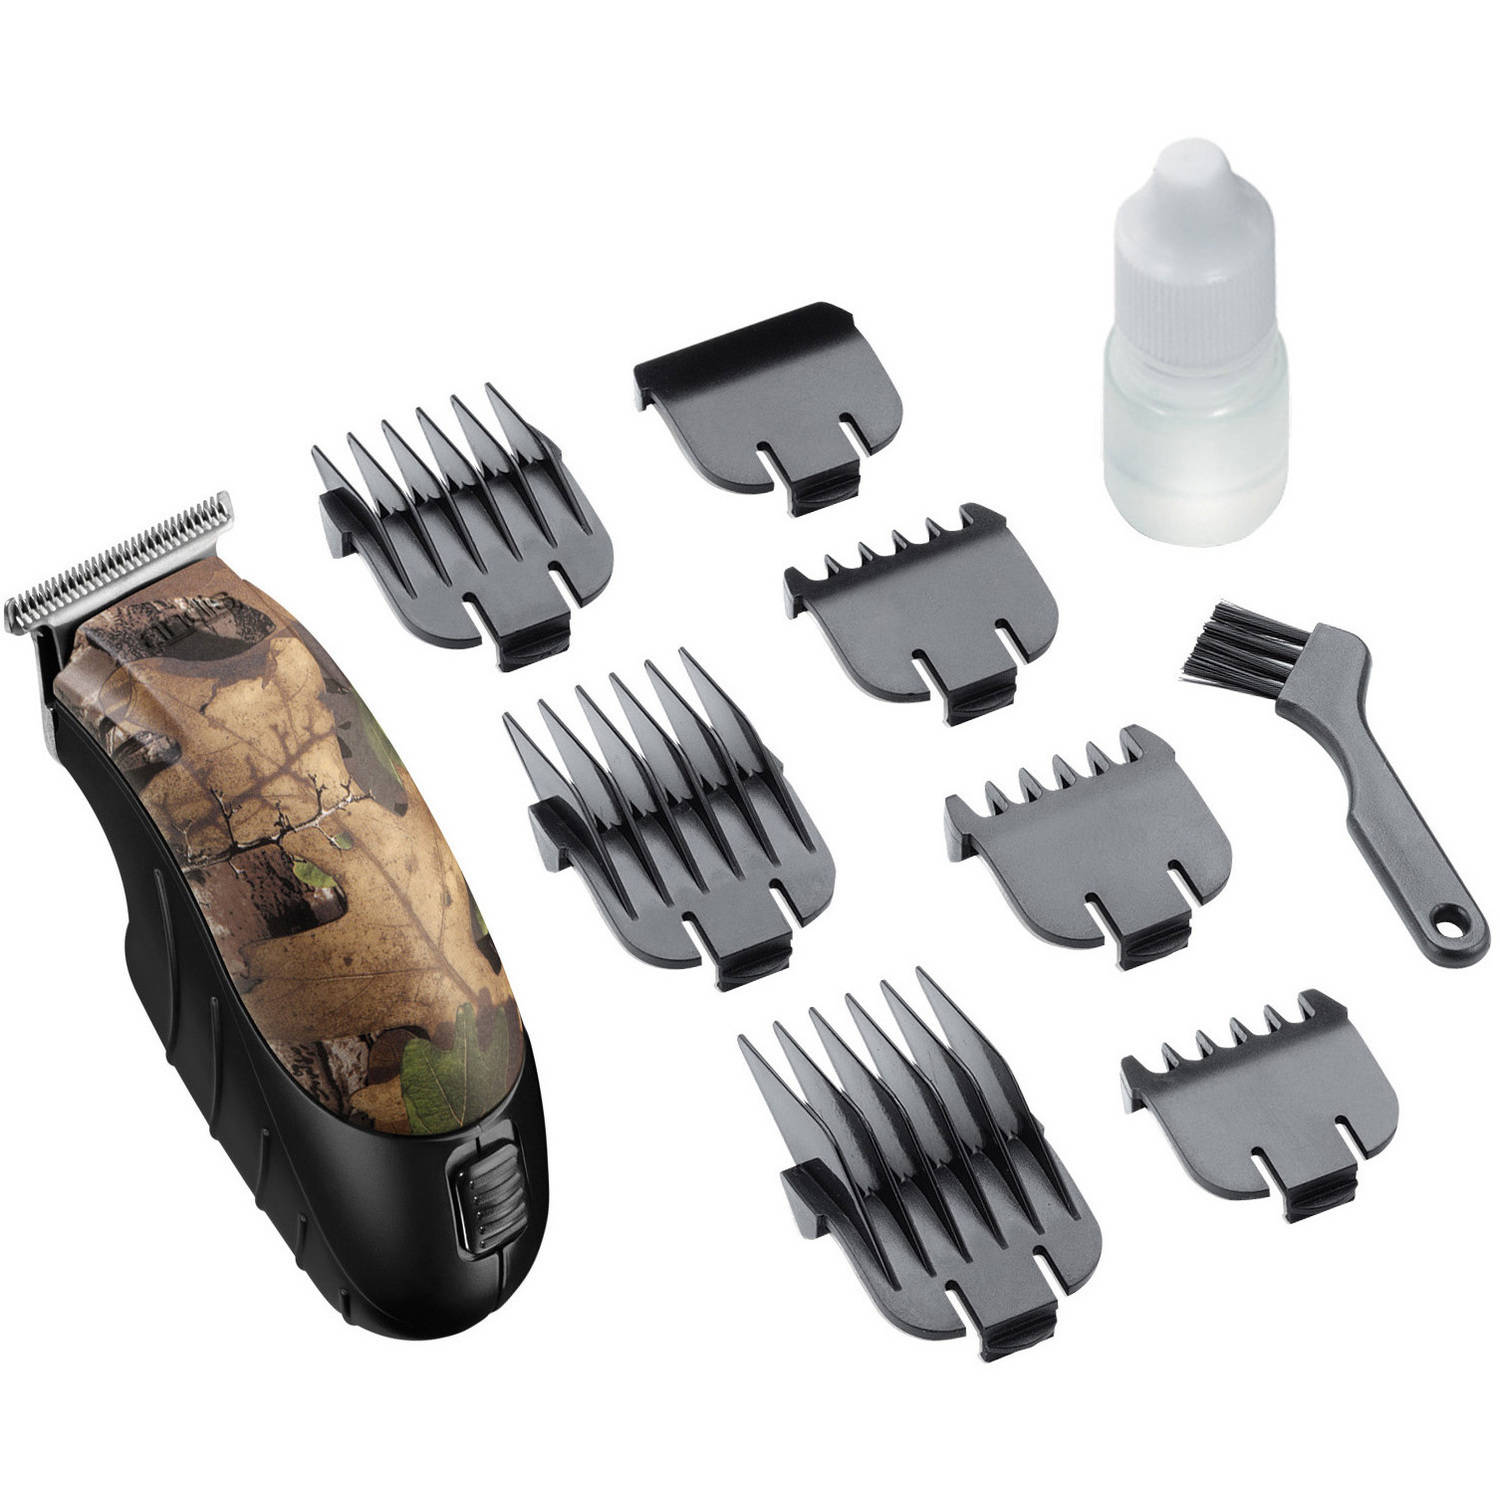 Andis Men's Realtree Camo Trim 'N Go Cordless Personal Trimmer Kit, 22580, 10 Pieces